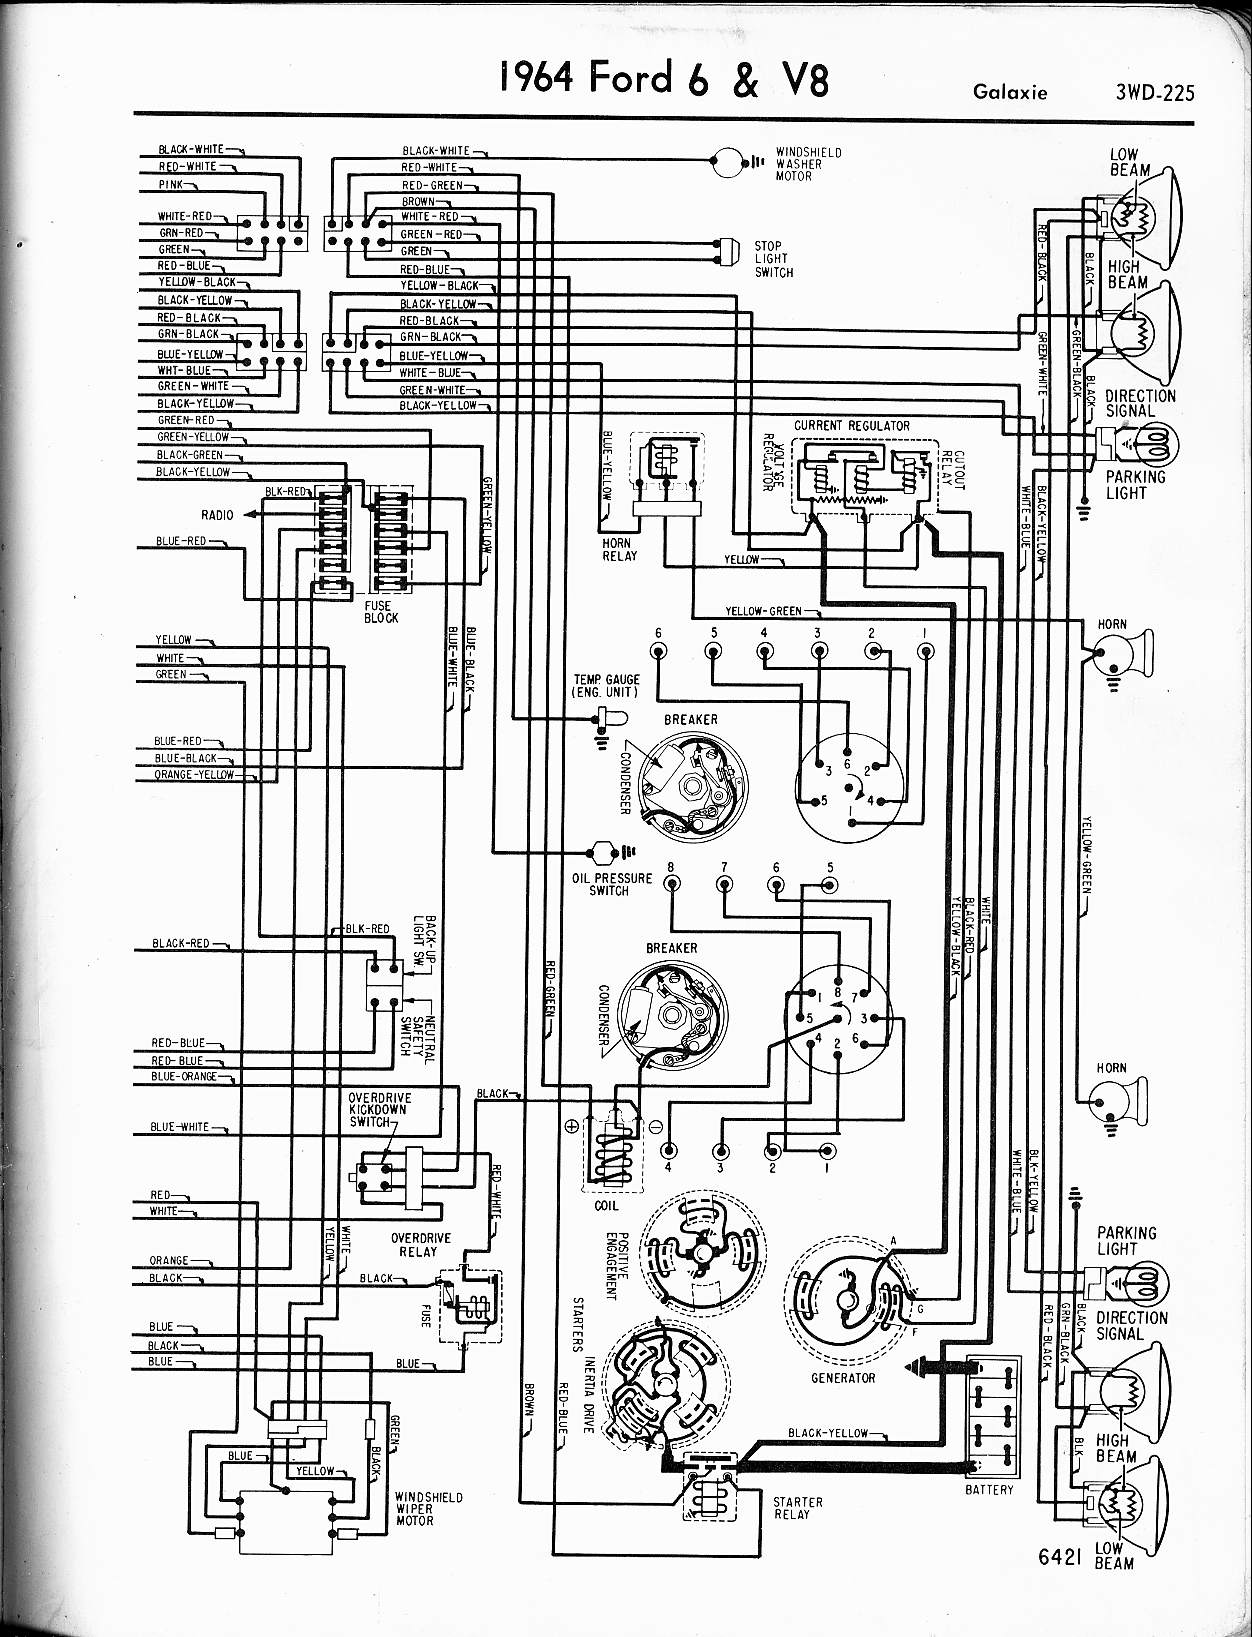 MWire5765 225 64 2 speed wiper motor wiring ford muscle forums ford muscle wiper motor wiring diagram for 1965 gto at creativeand.co